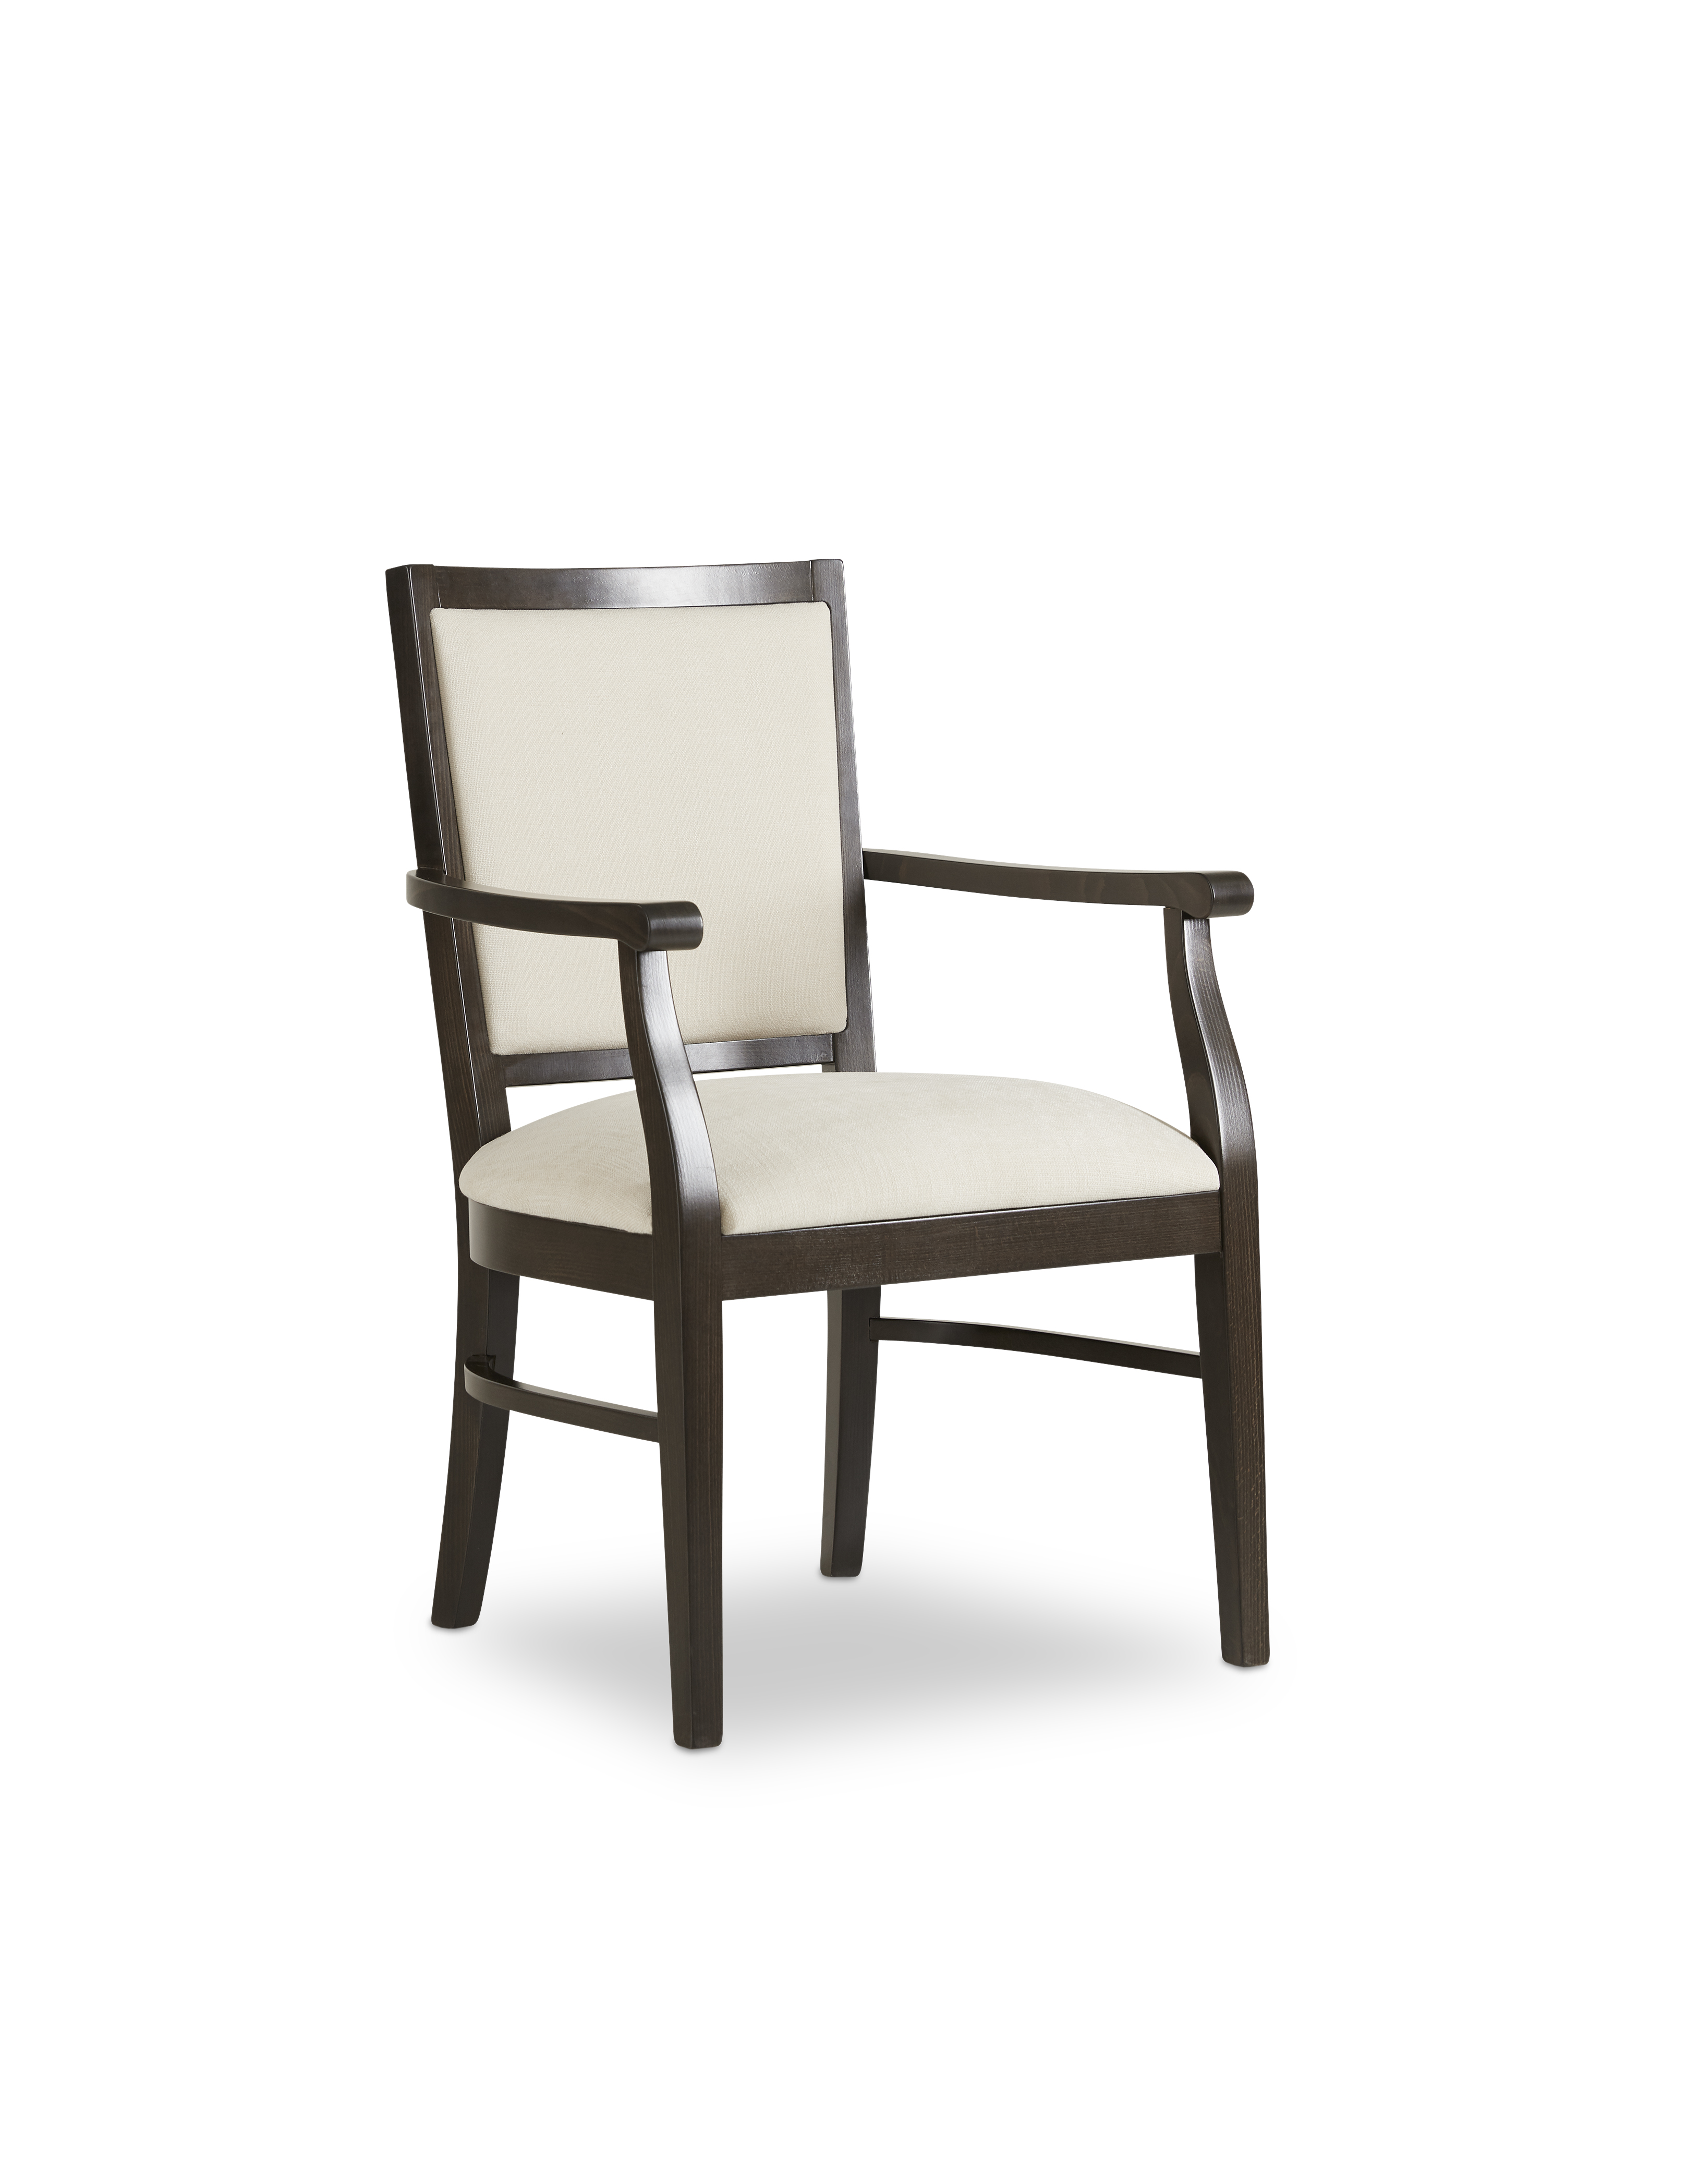 Amelia Dining Chair H Contract Furniture